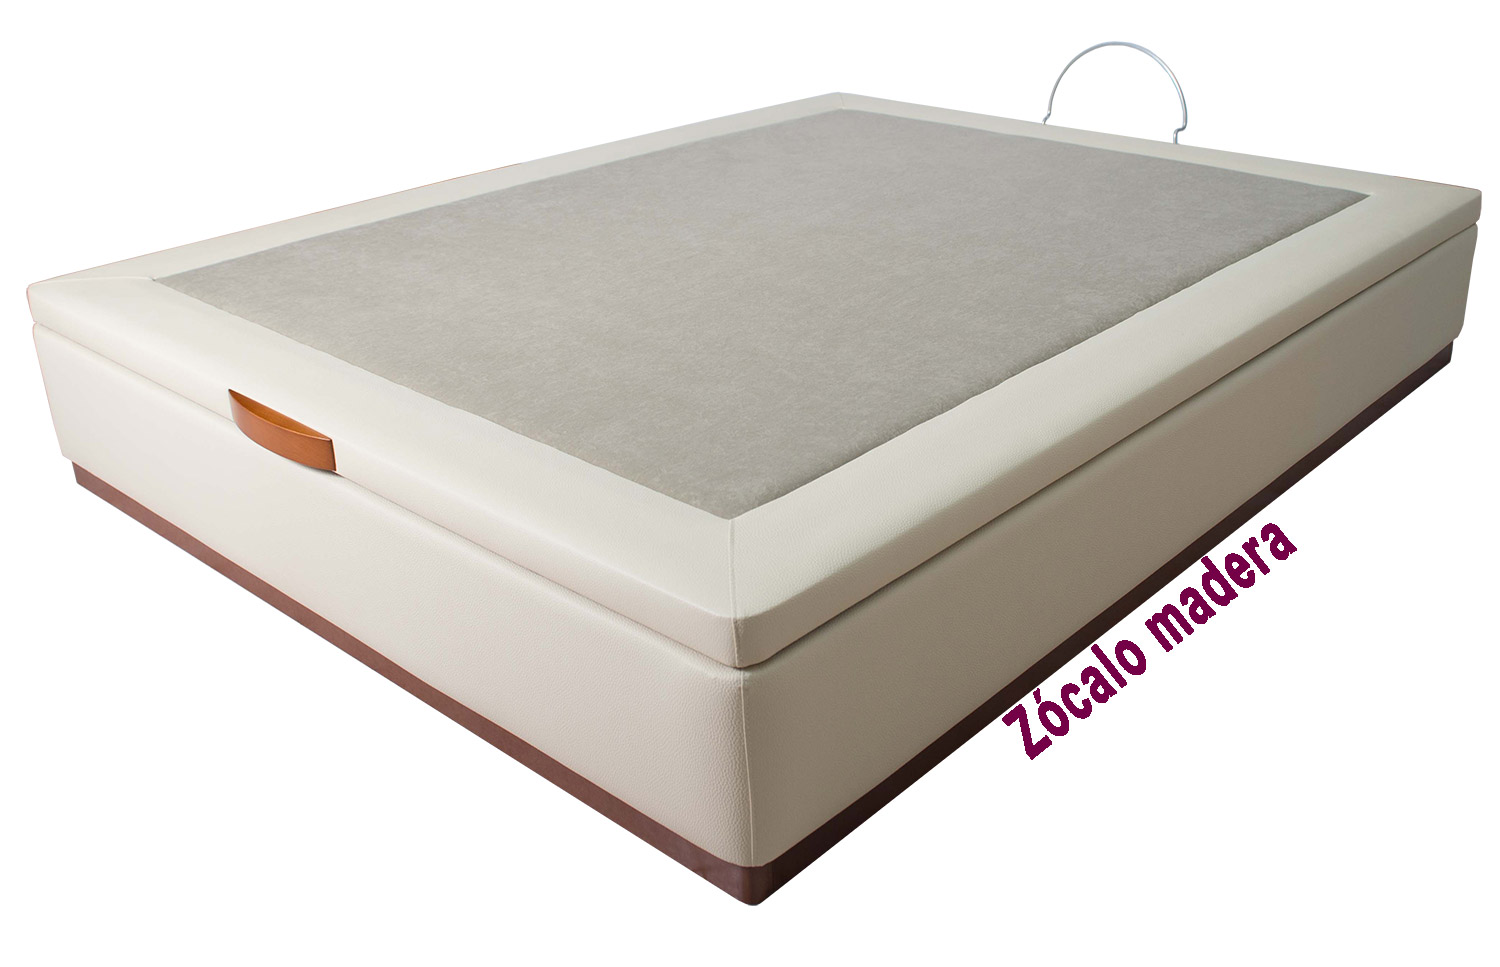 Cama con canape abatible canap abatible tapizado eva with for Canape abatible